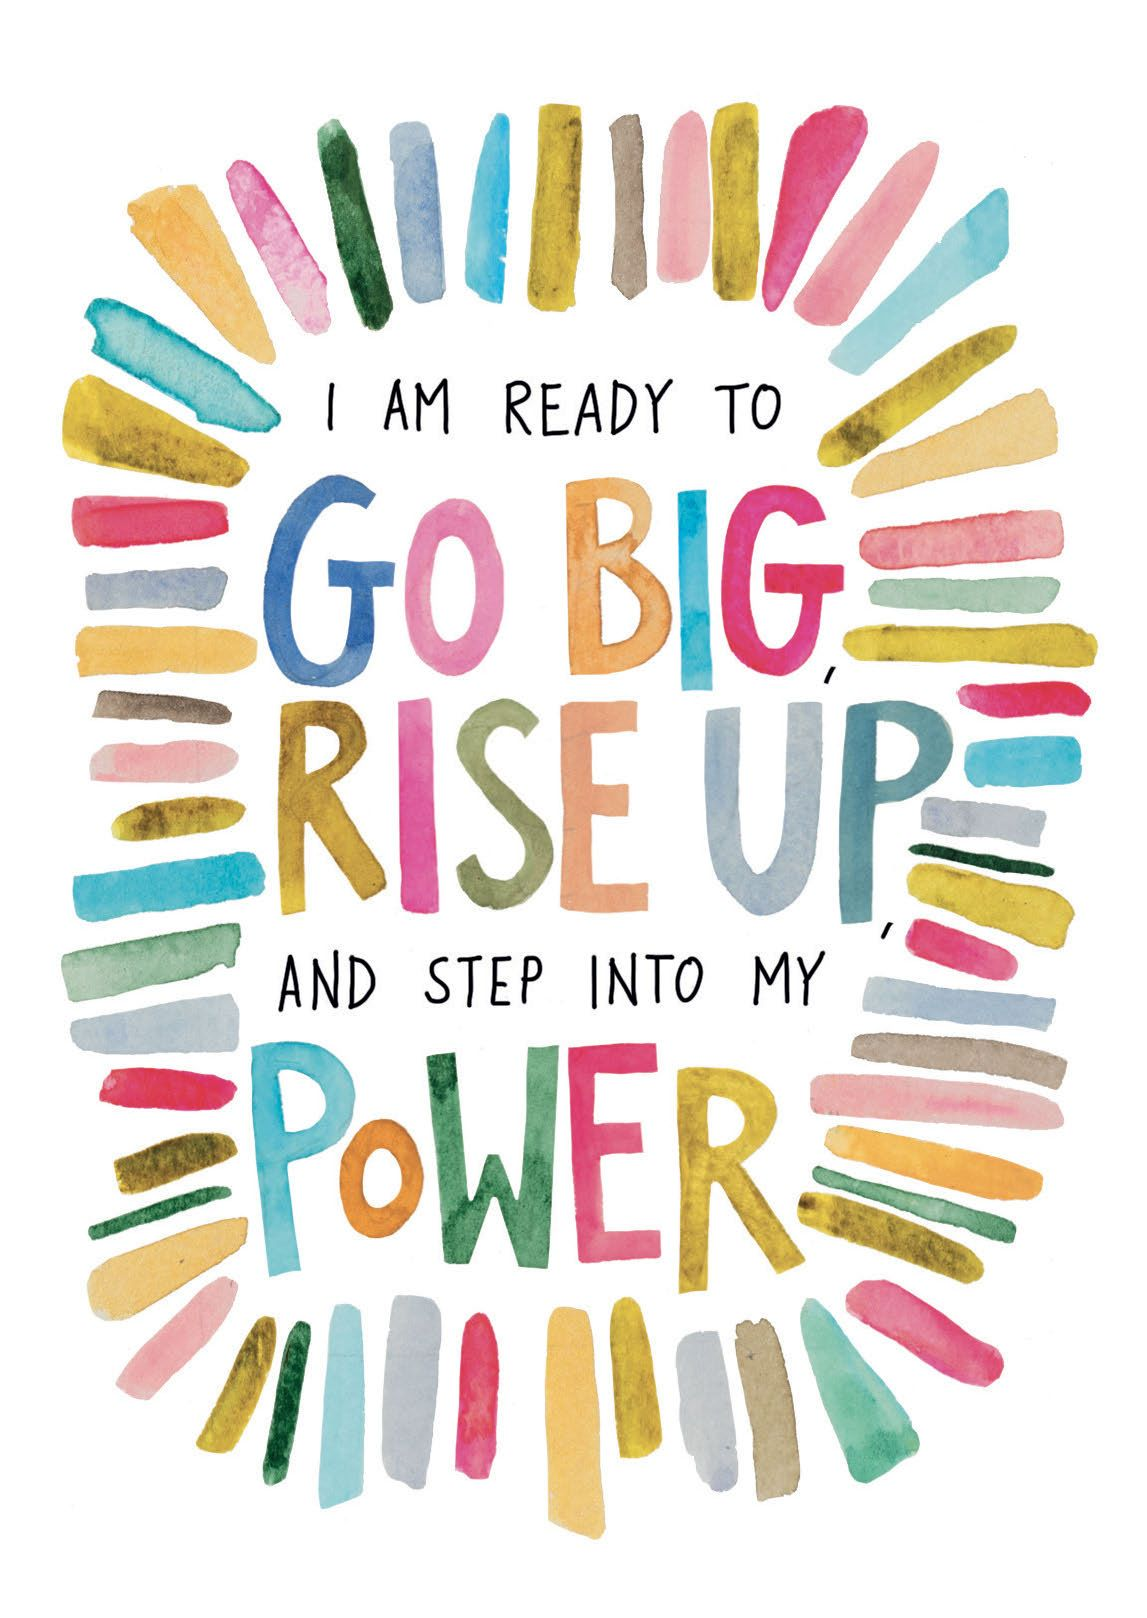 I AM READY TO GO BIG, RISE UP, AND STEP INTO MY POWER.